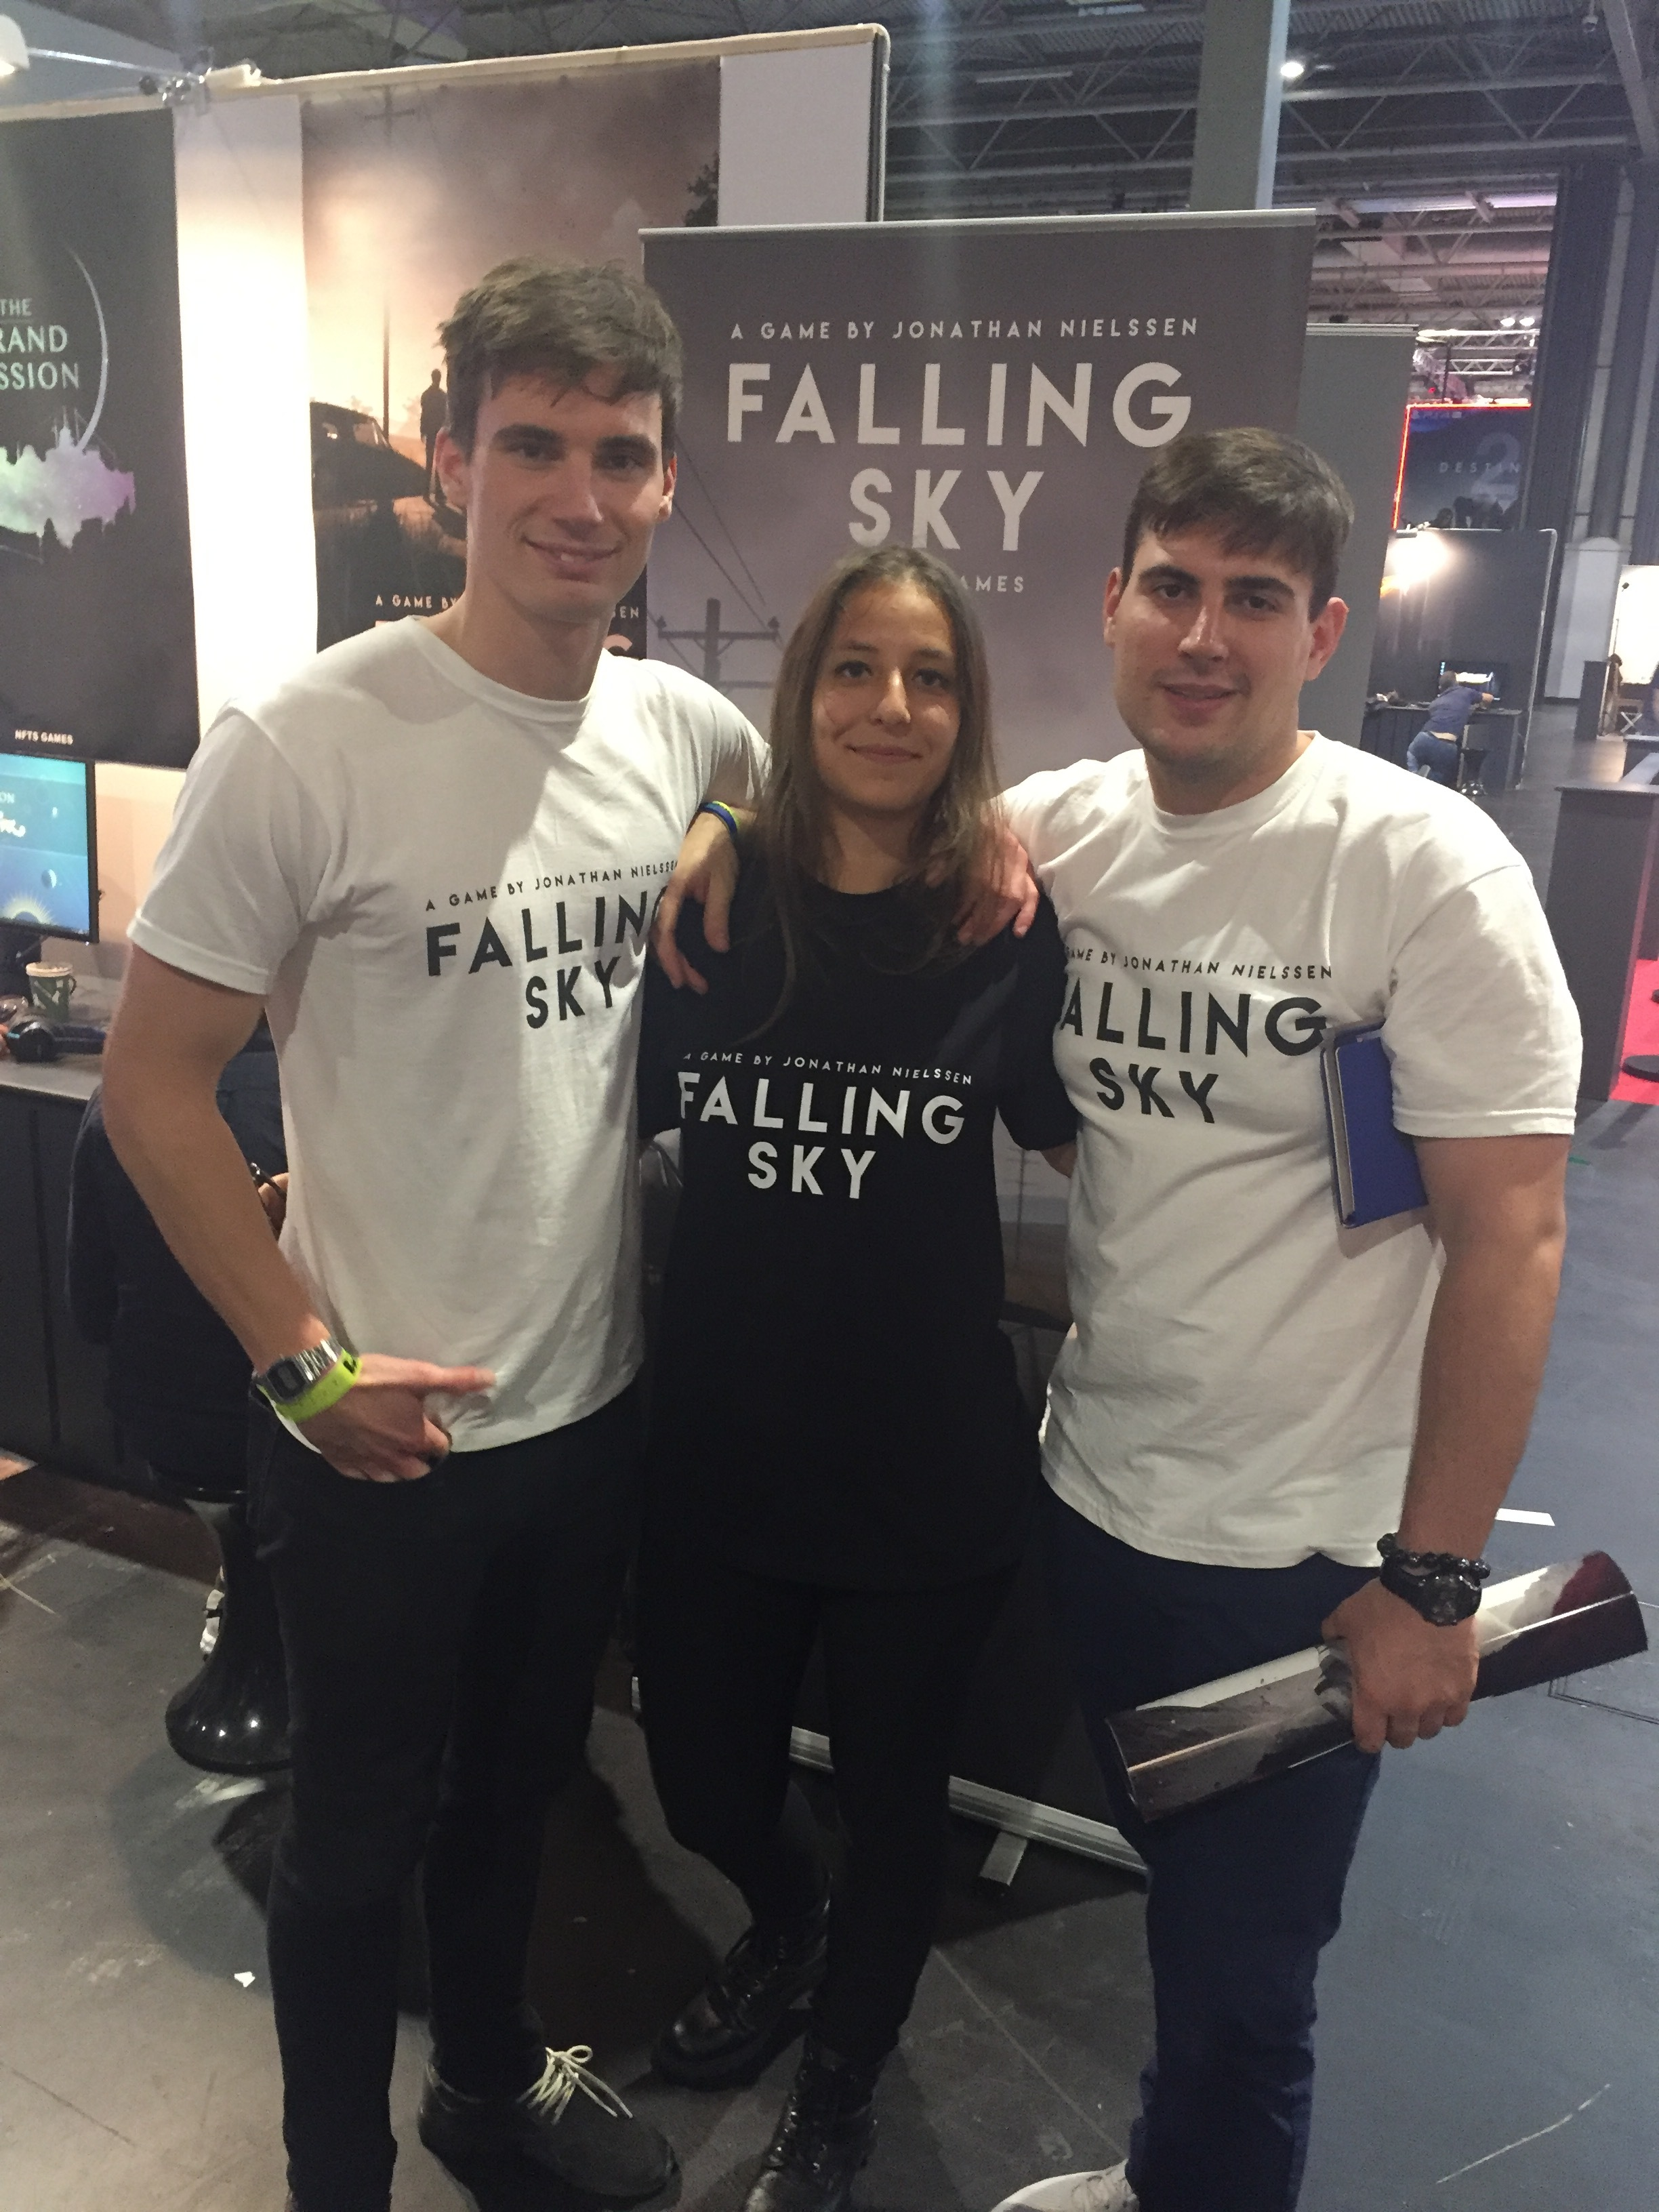 From the left: Jonathan, Zsofi and Nikolay at EGX 2017